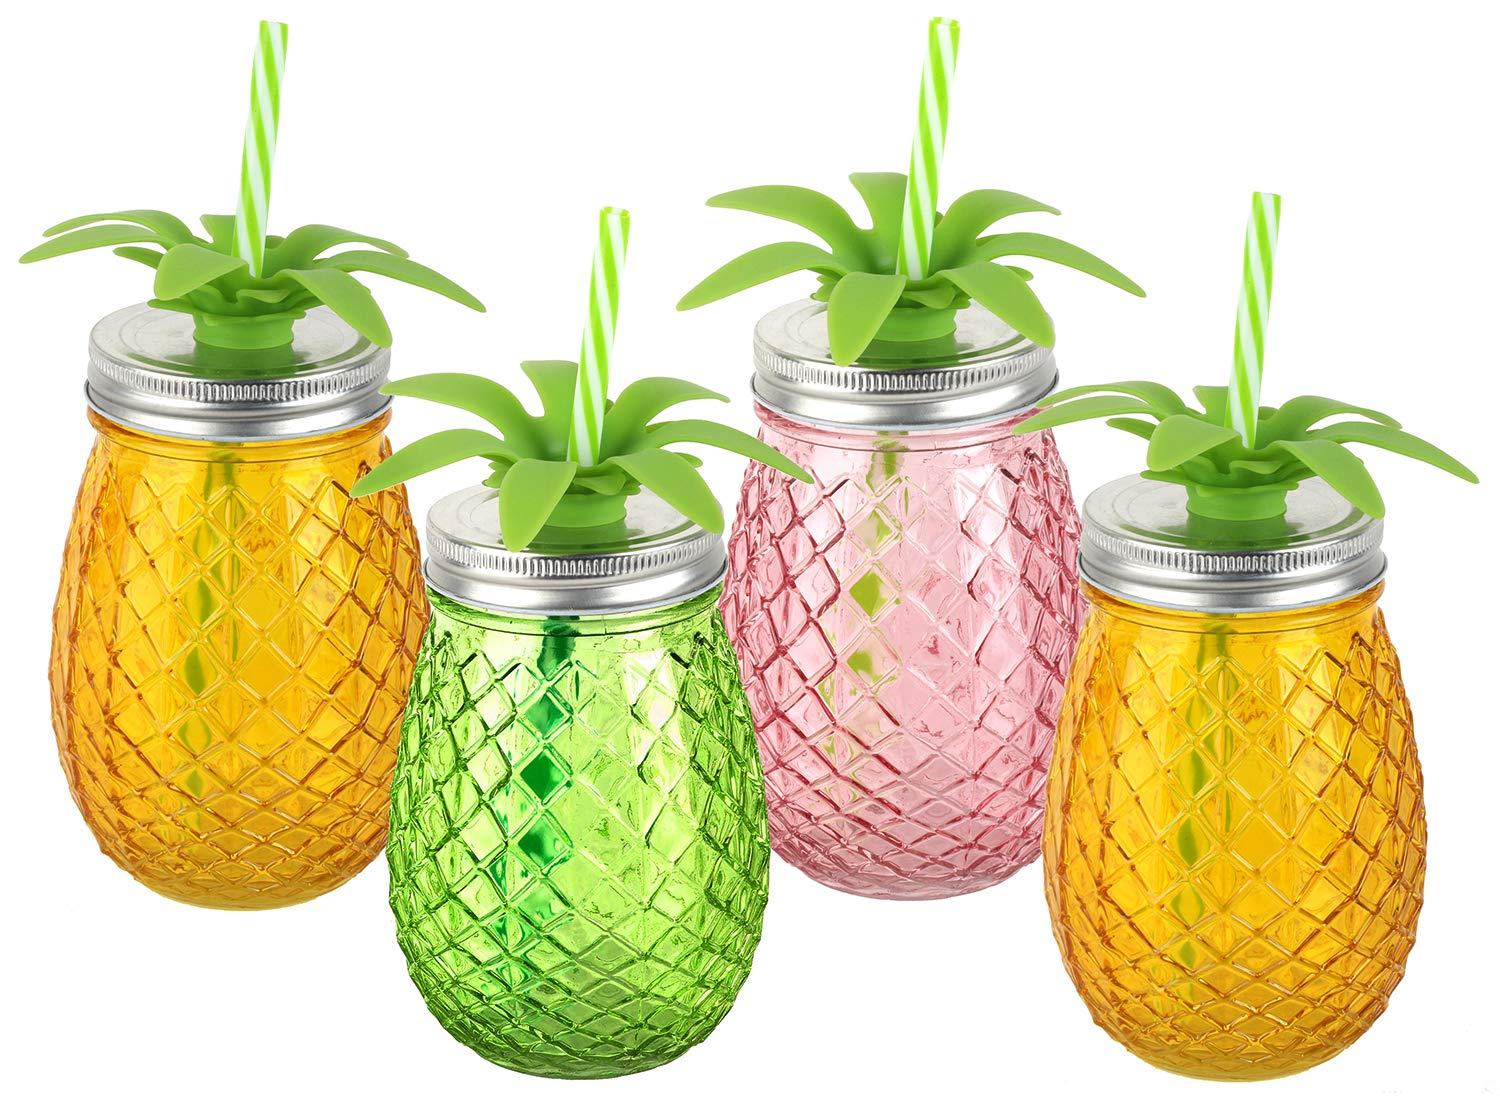 URBAN DEN | GLASS BEVERAGE DISPENSER | DRINK DISPENSER FOR PARTIES | 4 AND 5 PC SETS | 4PC PINEAPPLE CUP SET